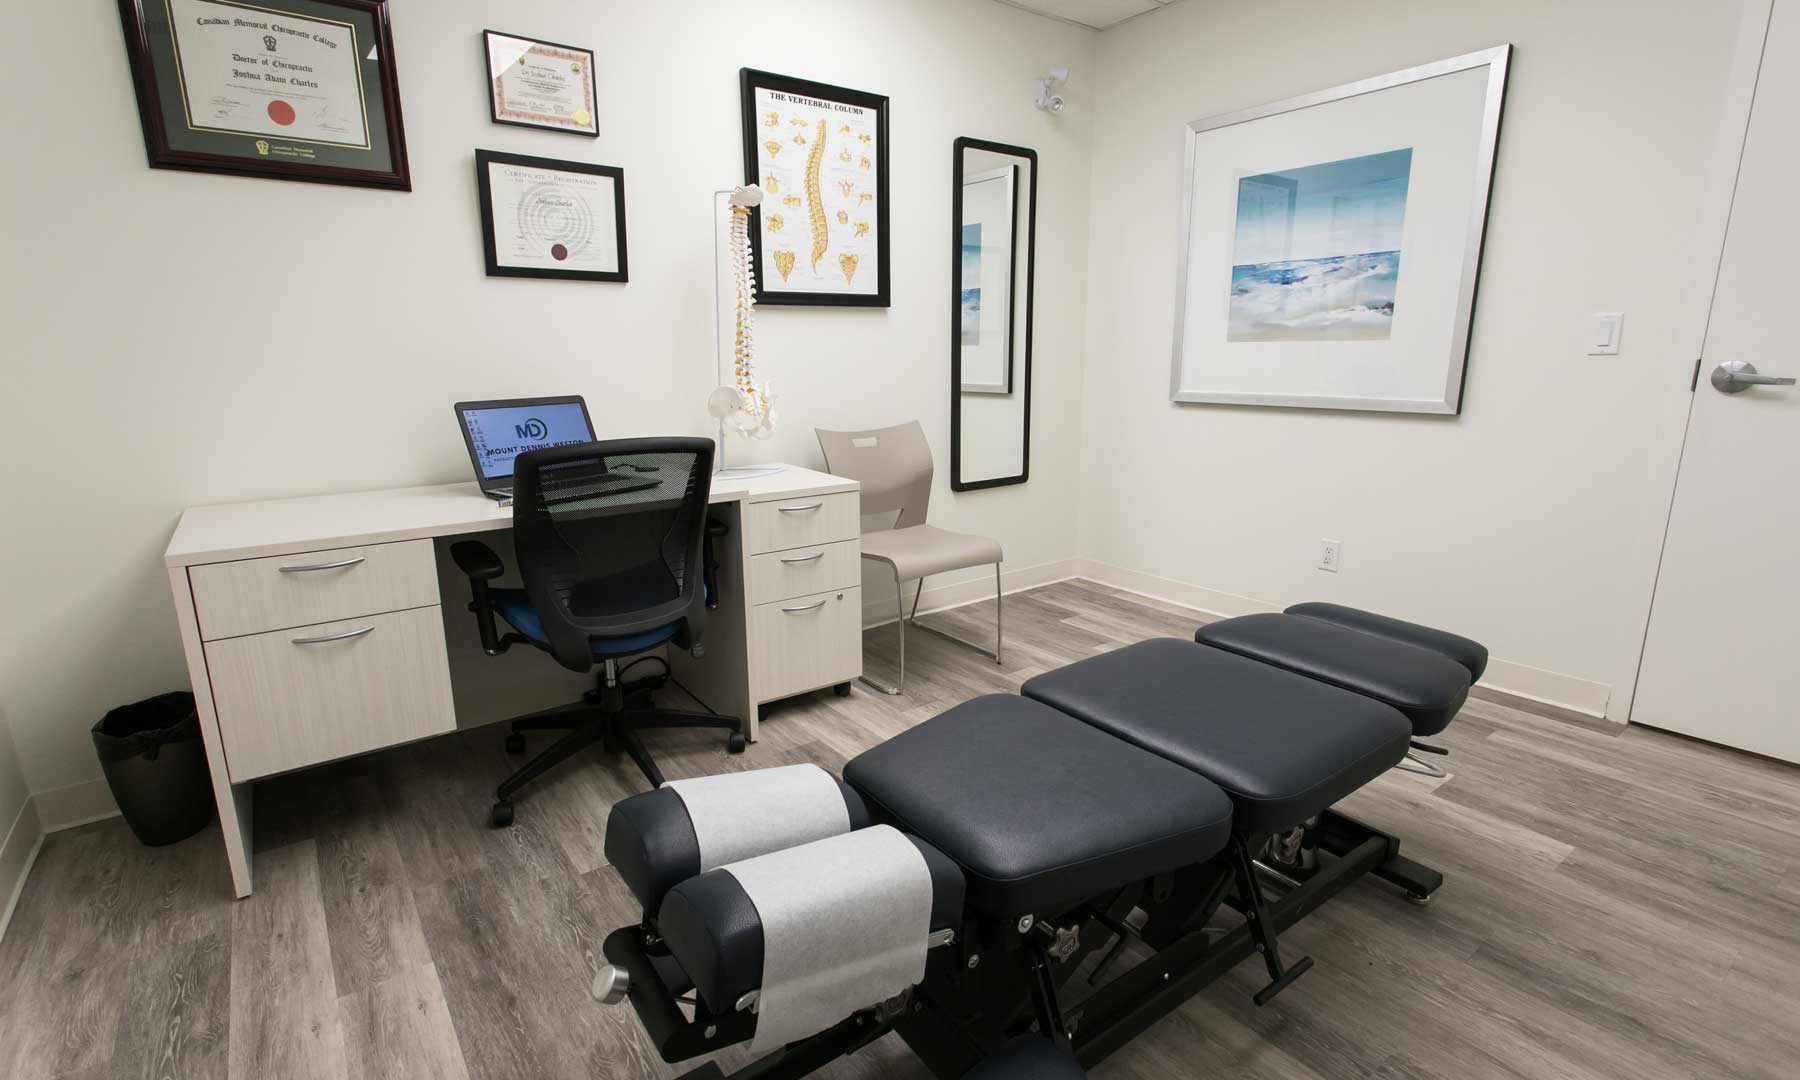 Physiotherapy Chiropractic Mount Dennis Weston Toronto Slide3